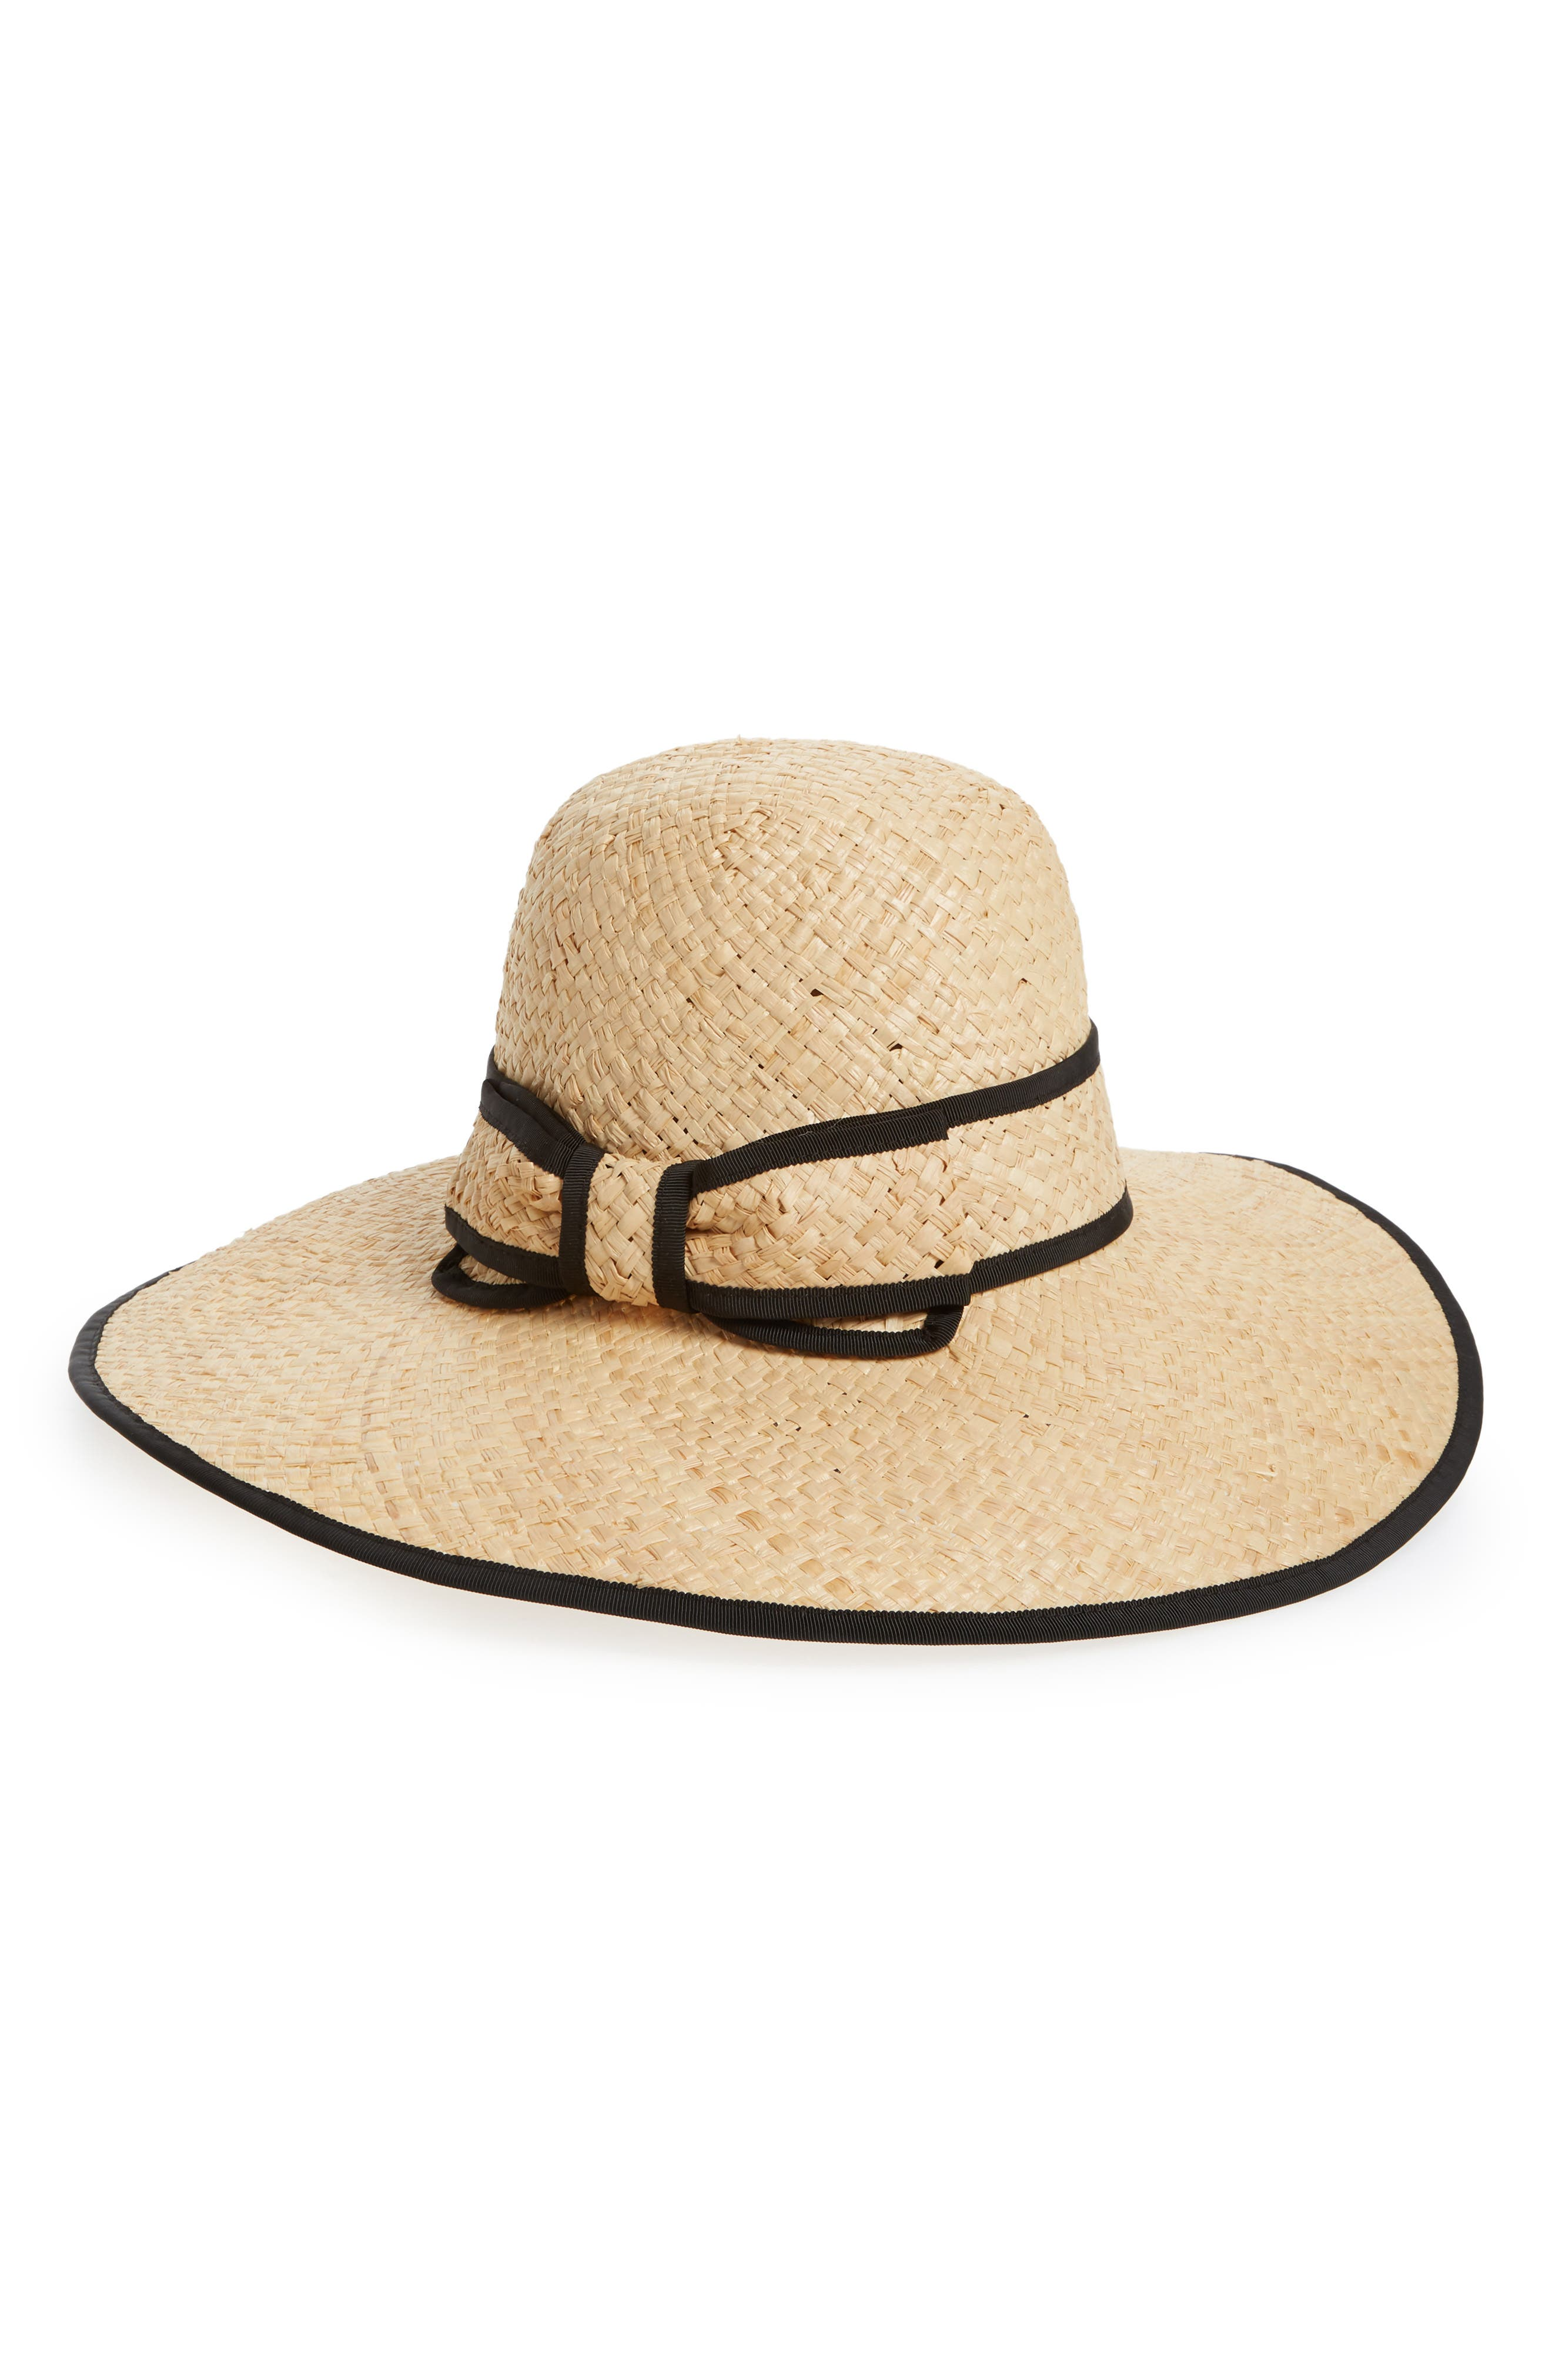 olive drive straw hat,                             Main thumbnail 1, color,                             200